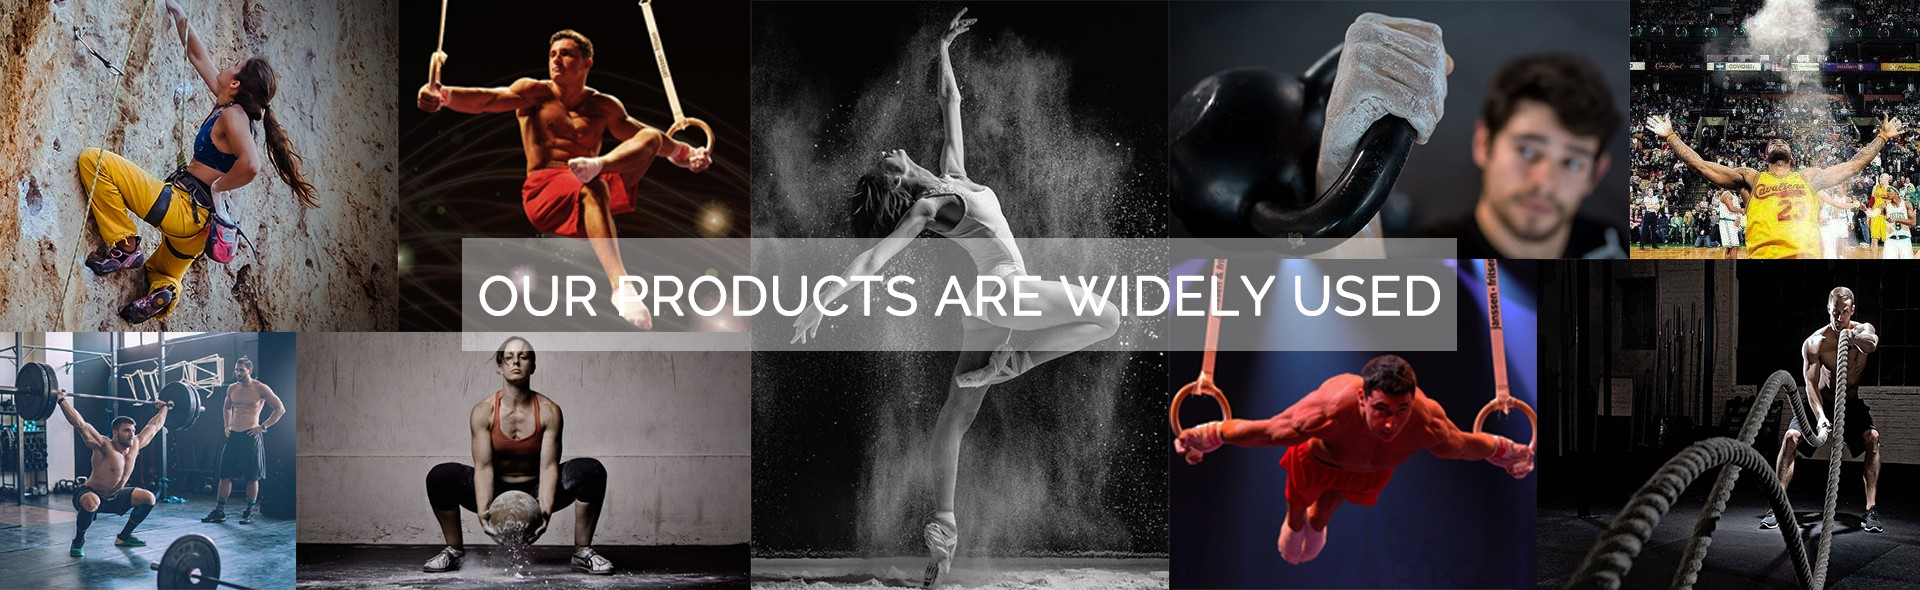 OUR PRODUCTS ARE WIDELY USED